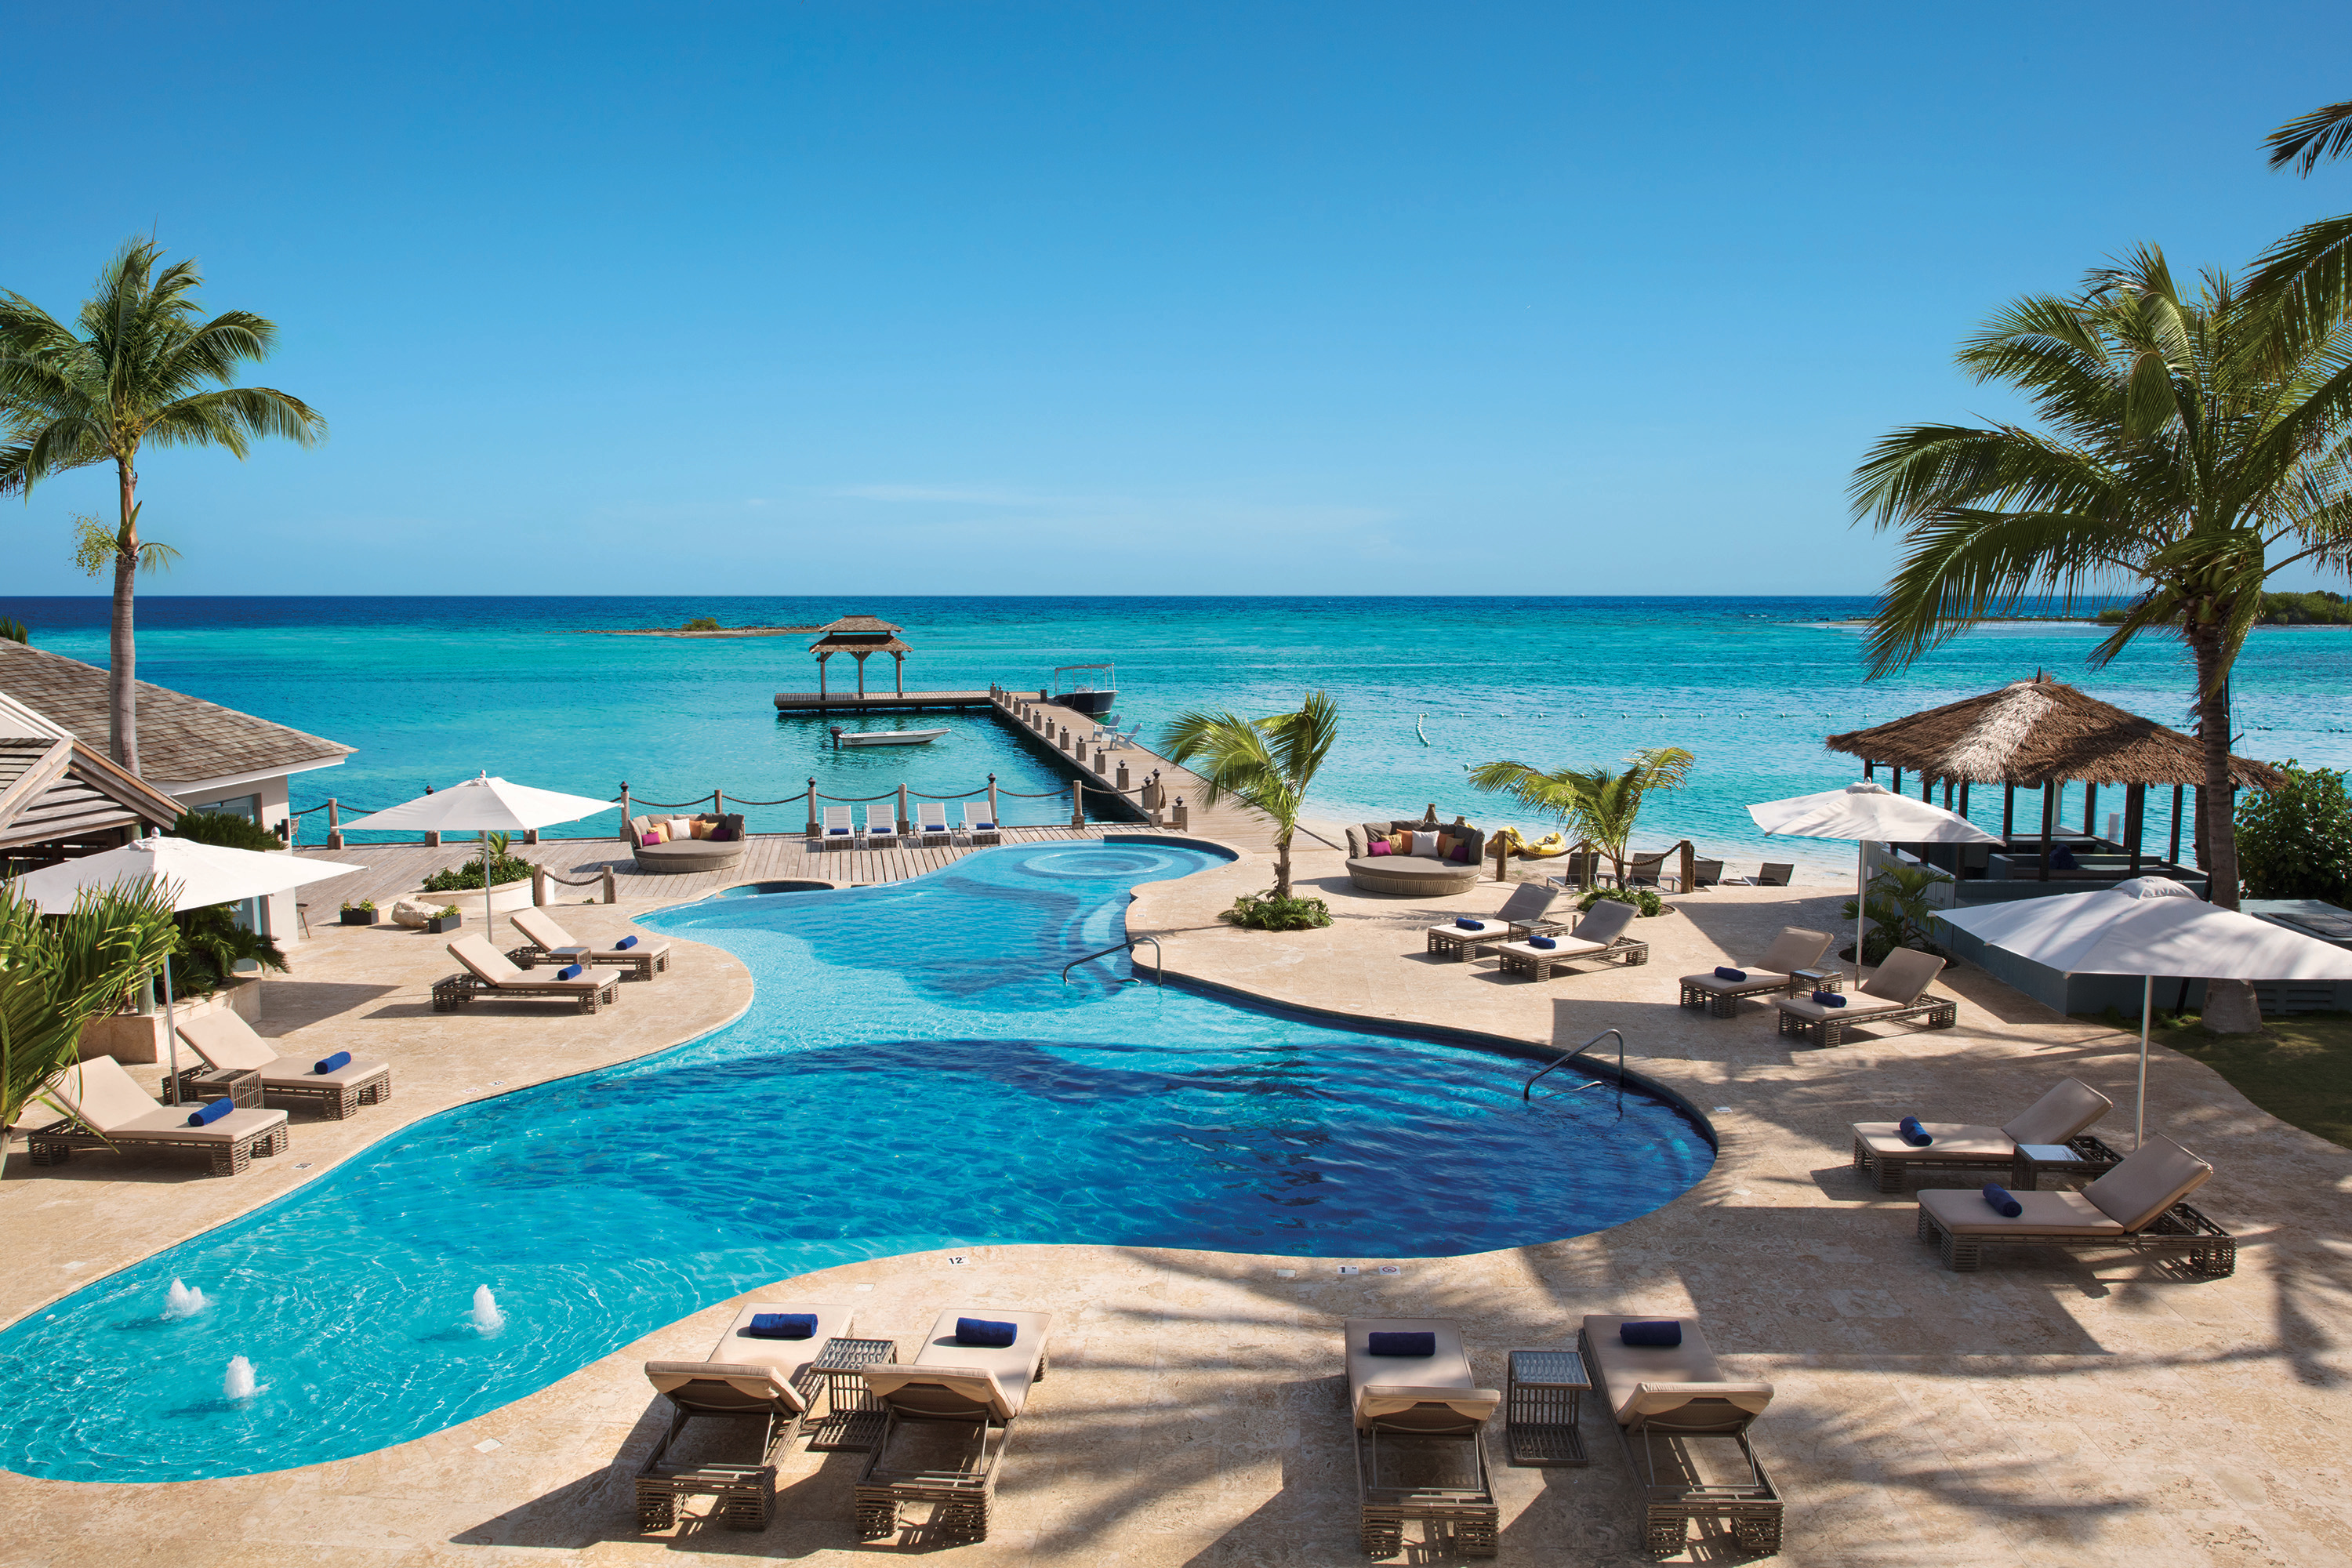 Travel Agency All-Inclusive Resort Zoetry Montego Bay 05